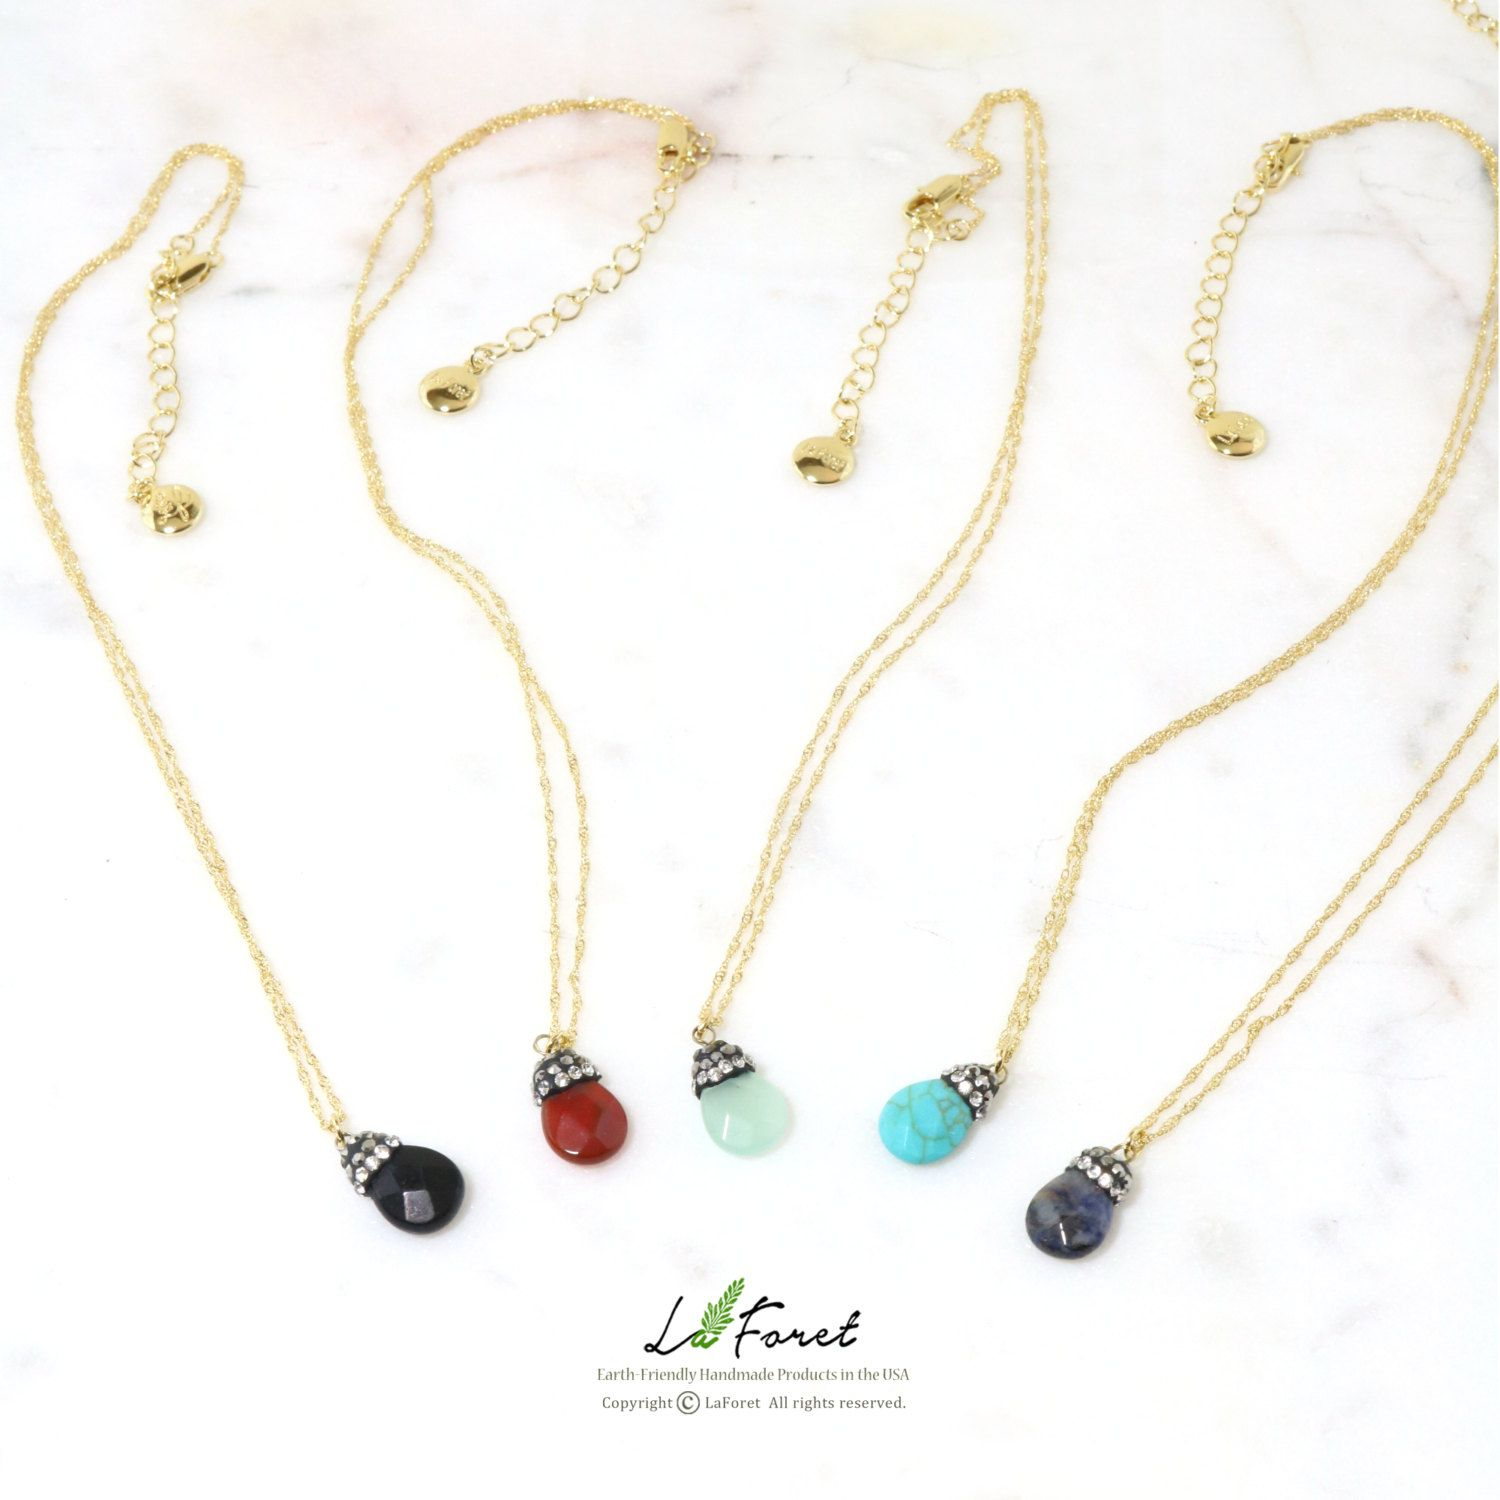 Free Shipping Andrea Tiny Faceted Teardrop Semi Precious Stone Short Necklace By Laforetcandle On Et Natural Stone Jewelry Short Necklace Semiprecious Stones